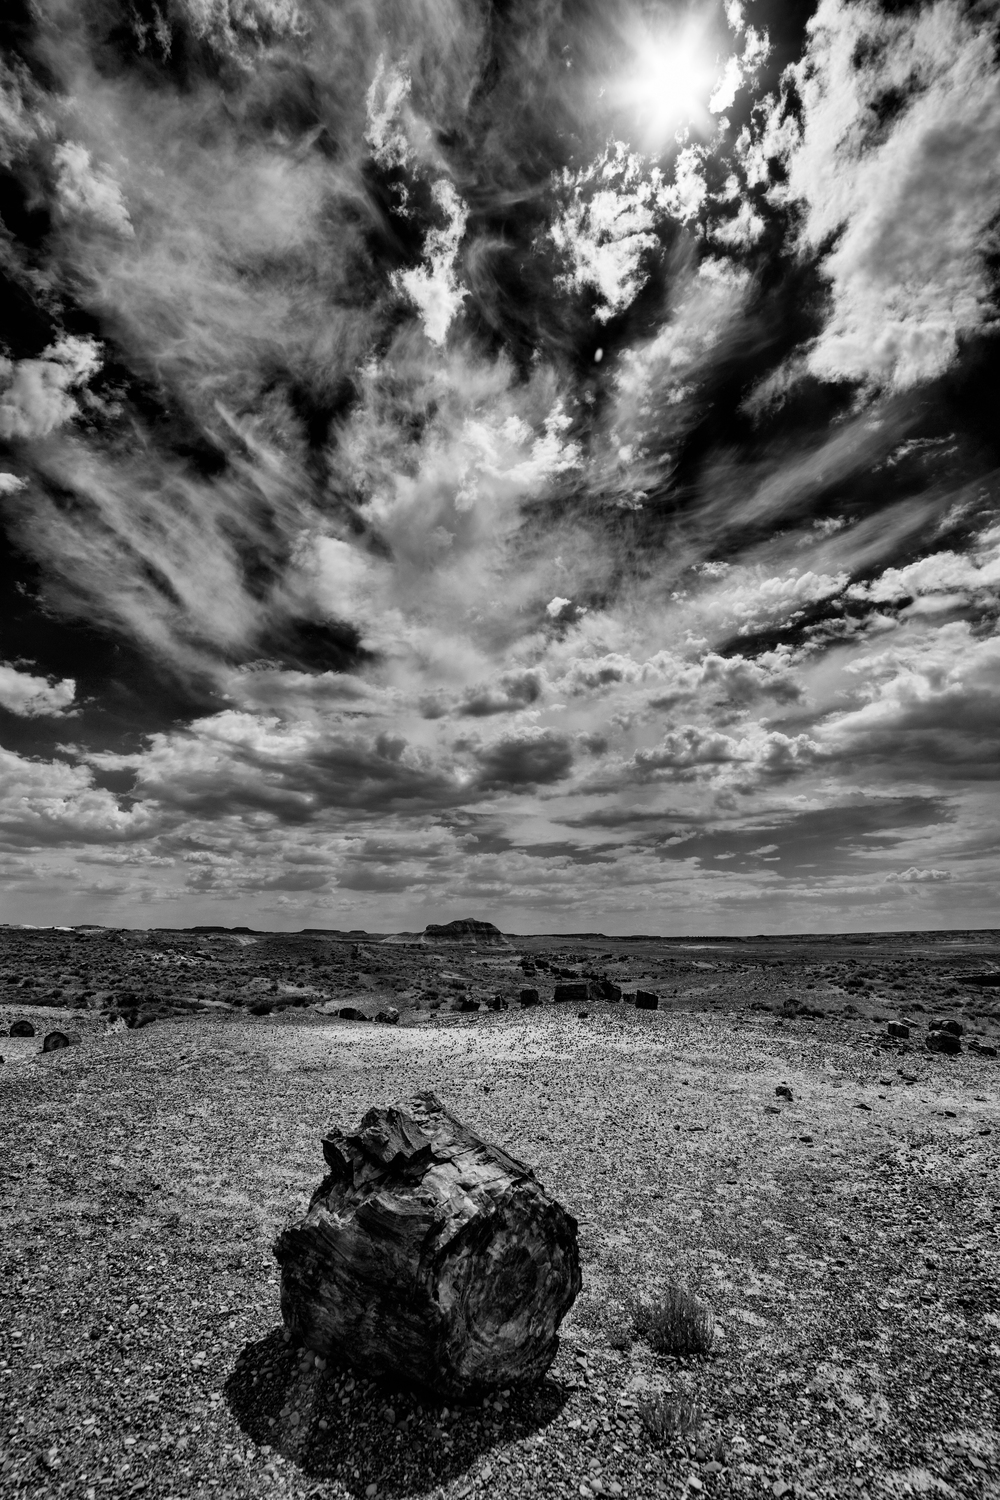 6/22 Photo: BOOM New Mexico! Petrified Forest National Park is really cool! I was not expecting it to be so big (25 miles of road to drive with offshoots). The petrified wood is really colorful but I thought this composition looked better in black and white (I have a thing for BW photo's).